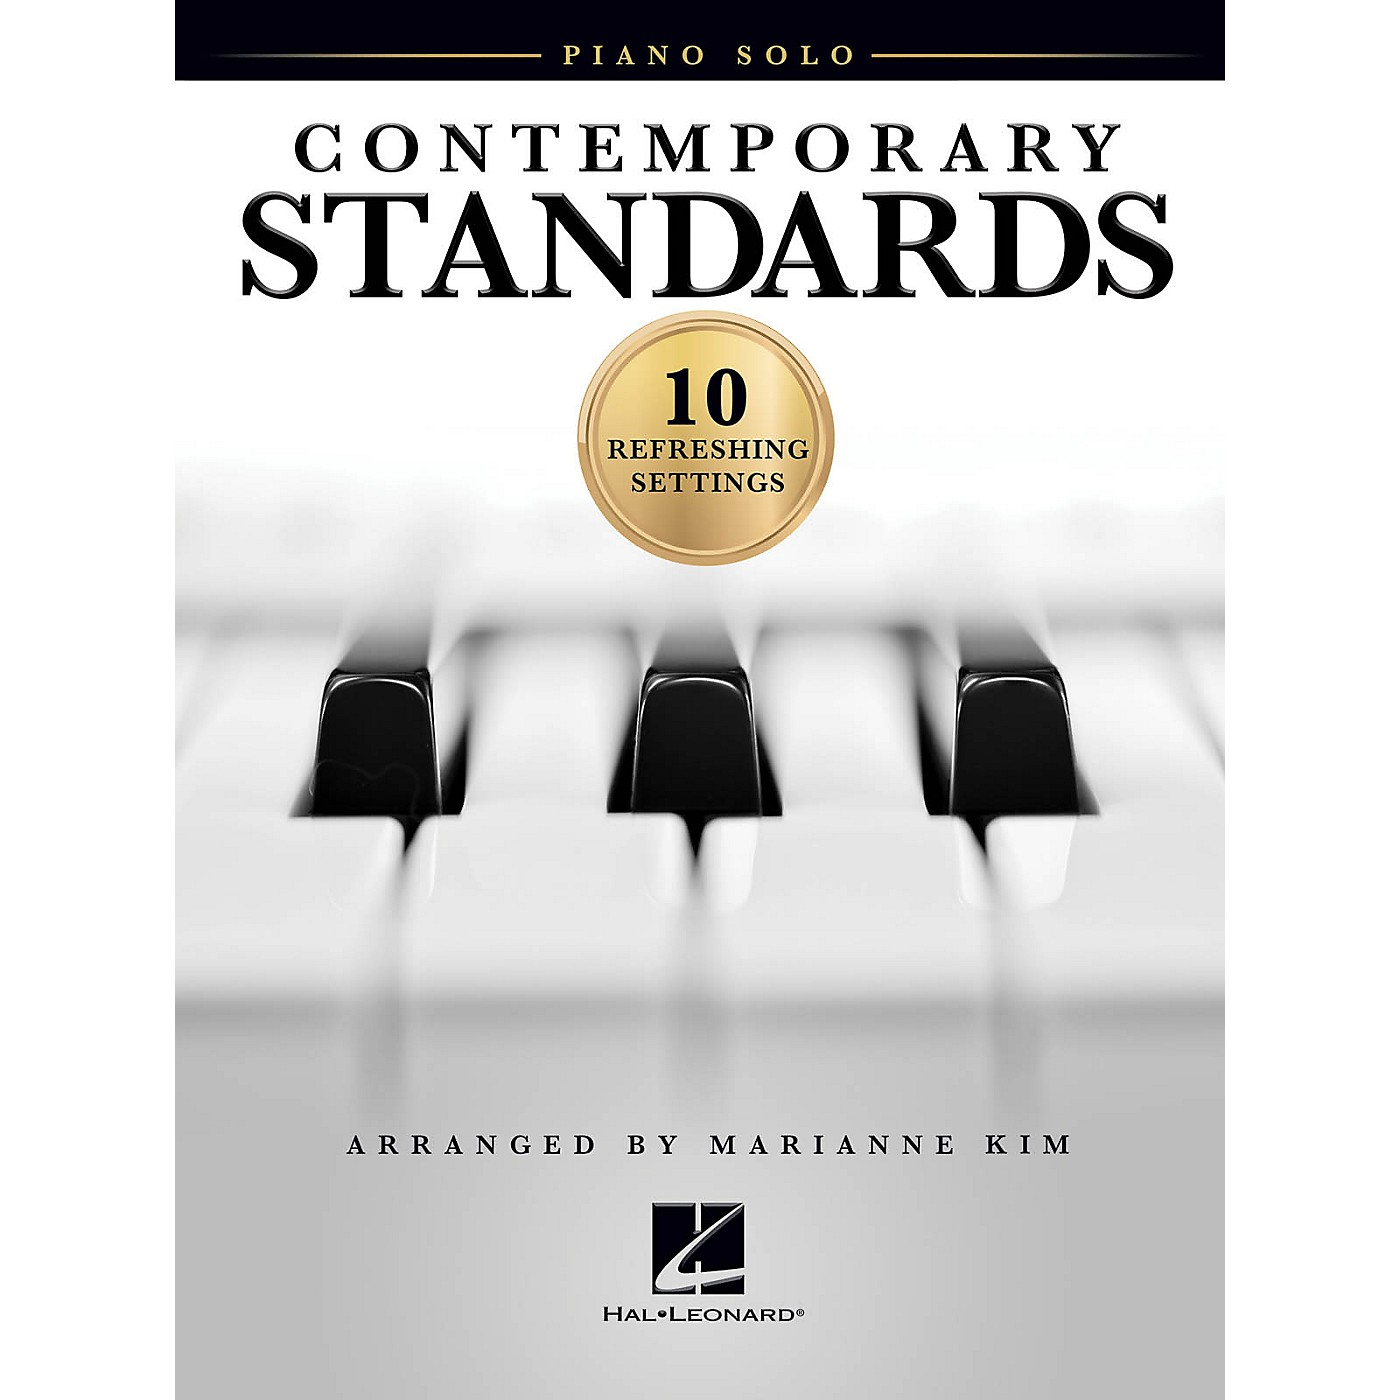 Hal Leonard Contemporary Standards (10 Refreshing Settings) Piano Solo Songbook thumbnail